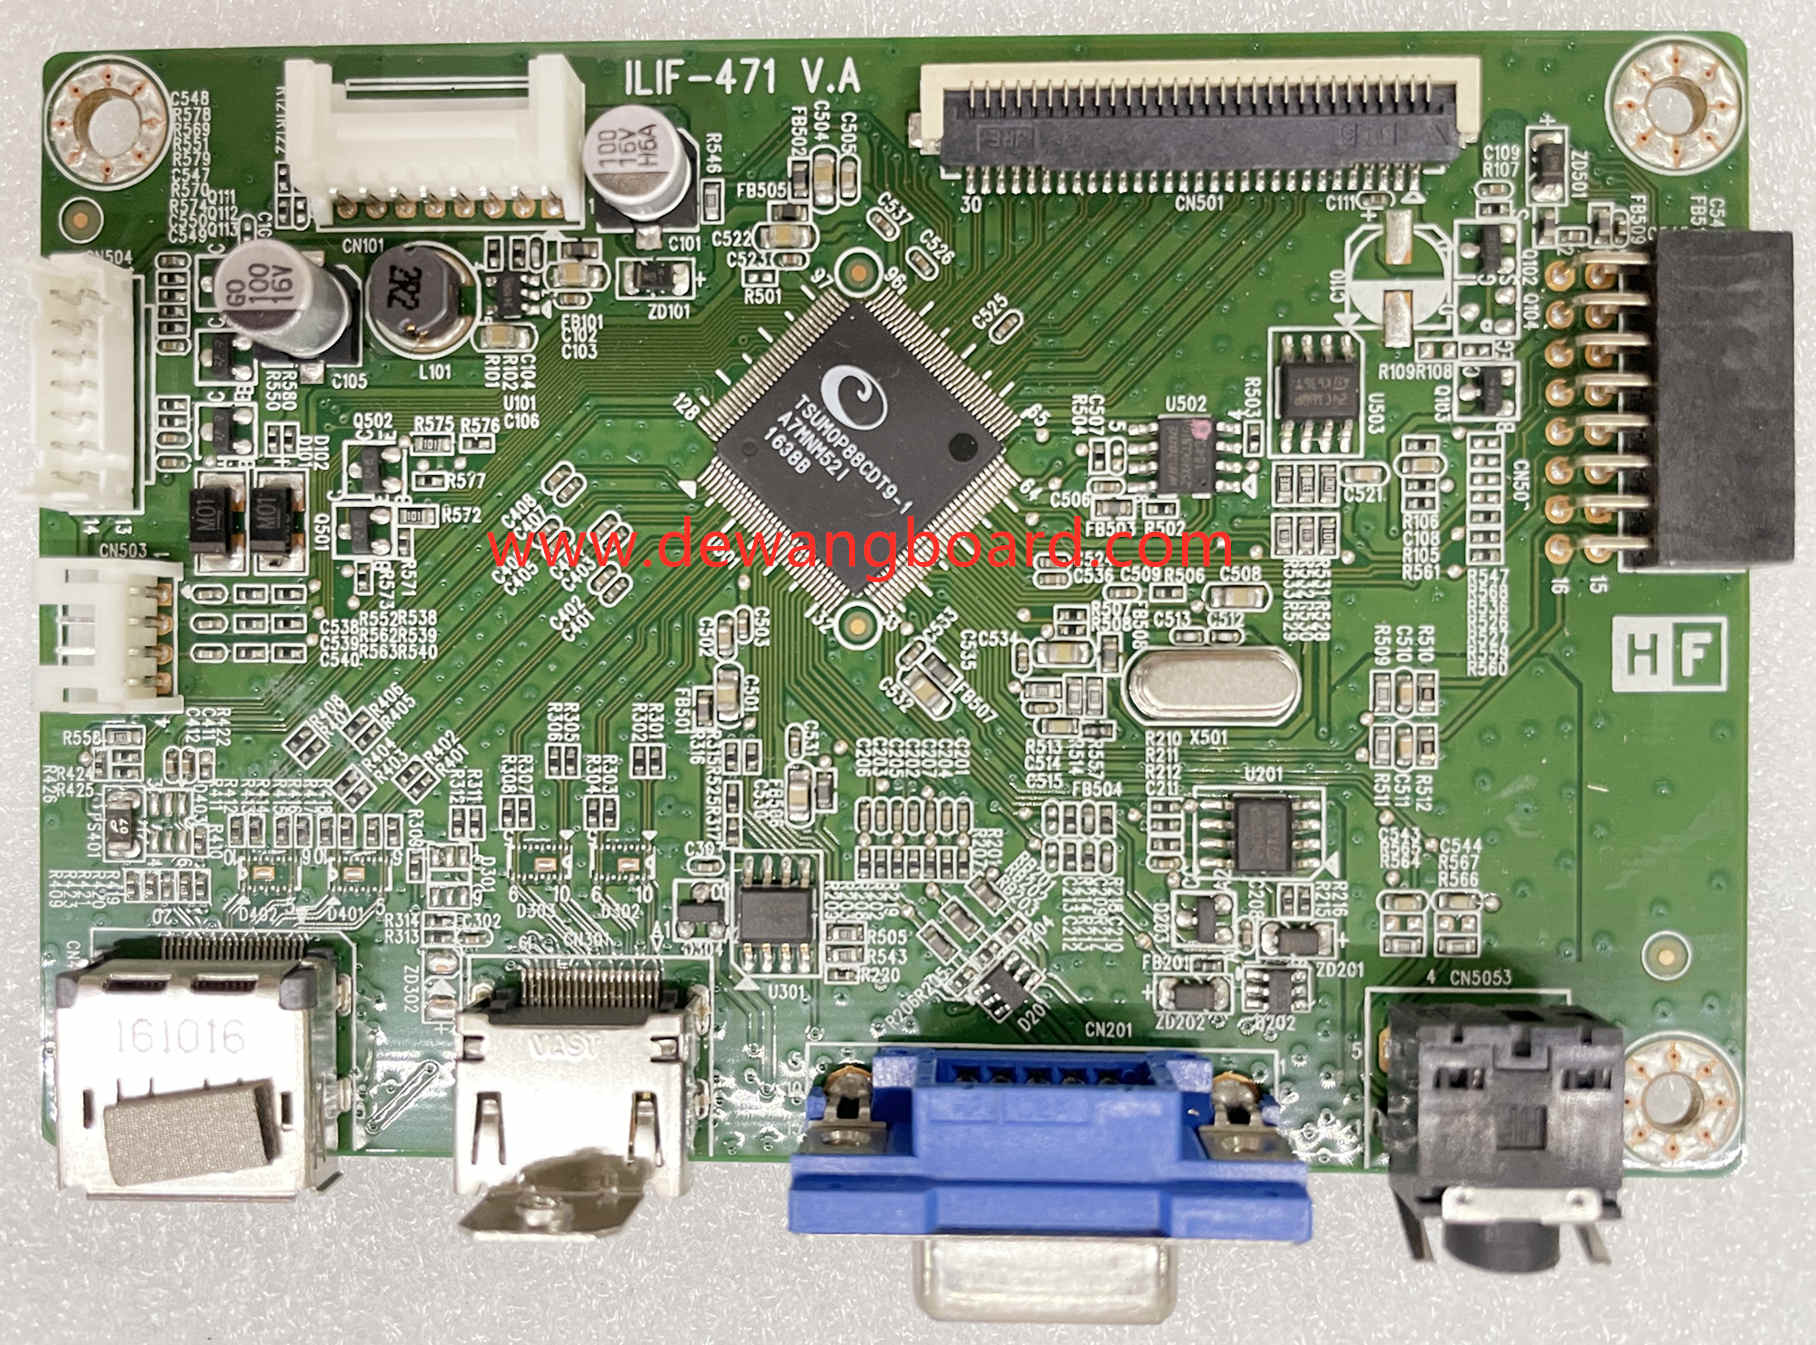 HP E240C main board ILIF-471 492A00AS1300H08